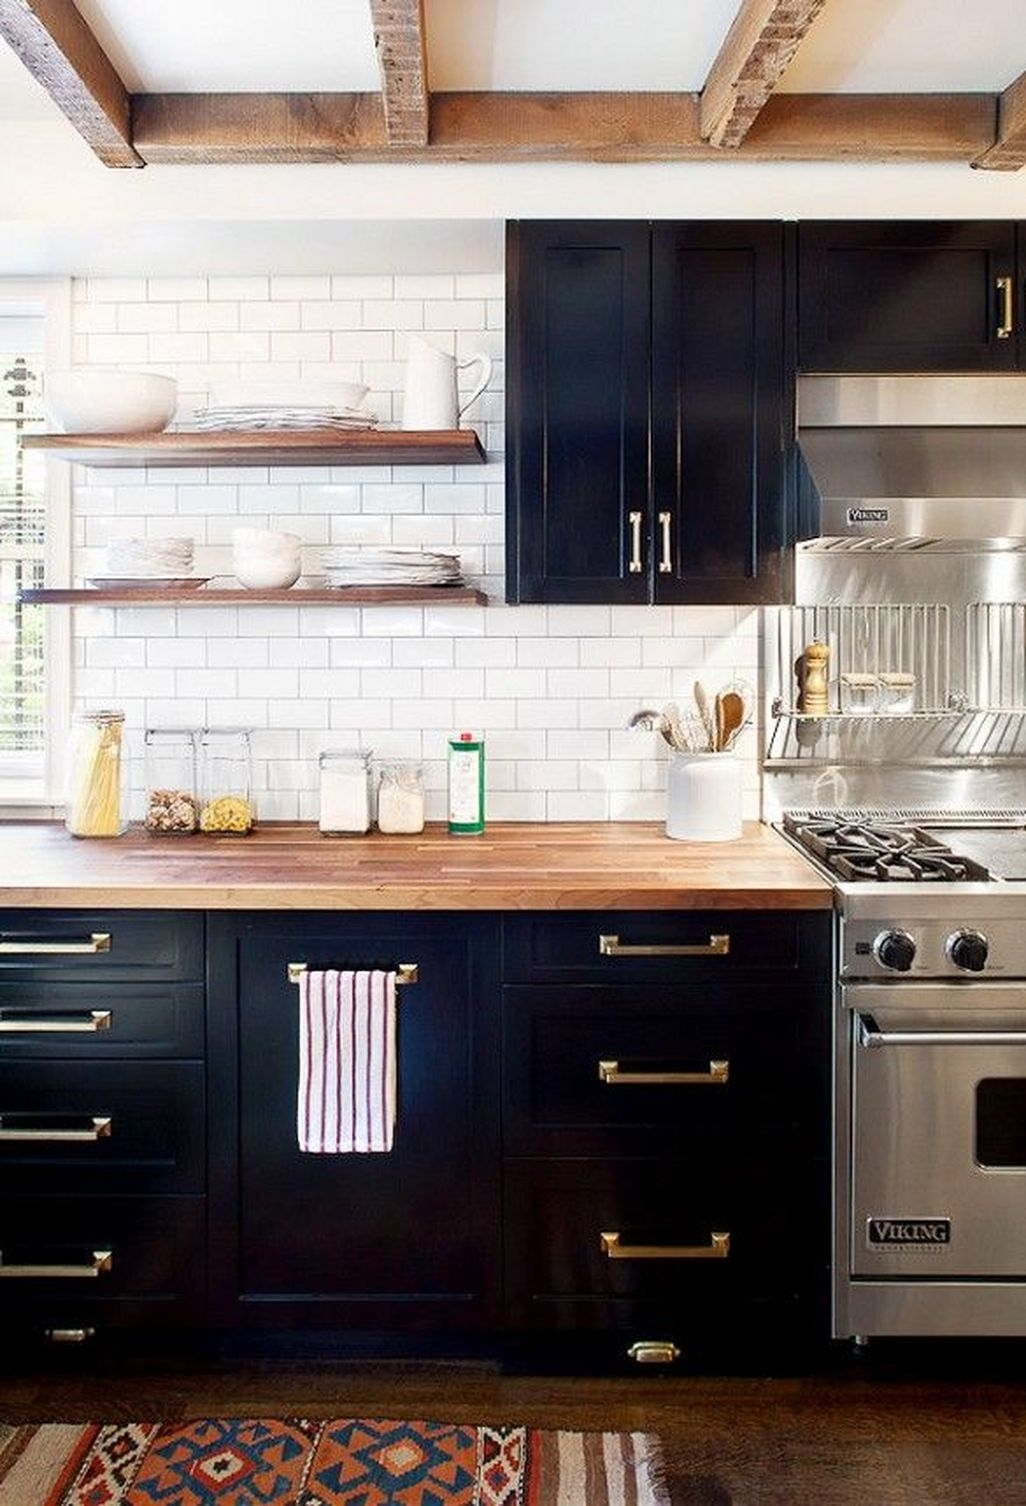 Stylish Rustic Kitchen Decor Open Shelves Ideas Butcher Block Countertop Black Kitchen Cabinets